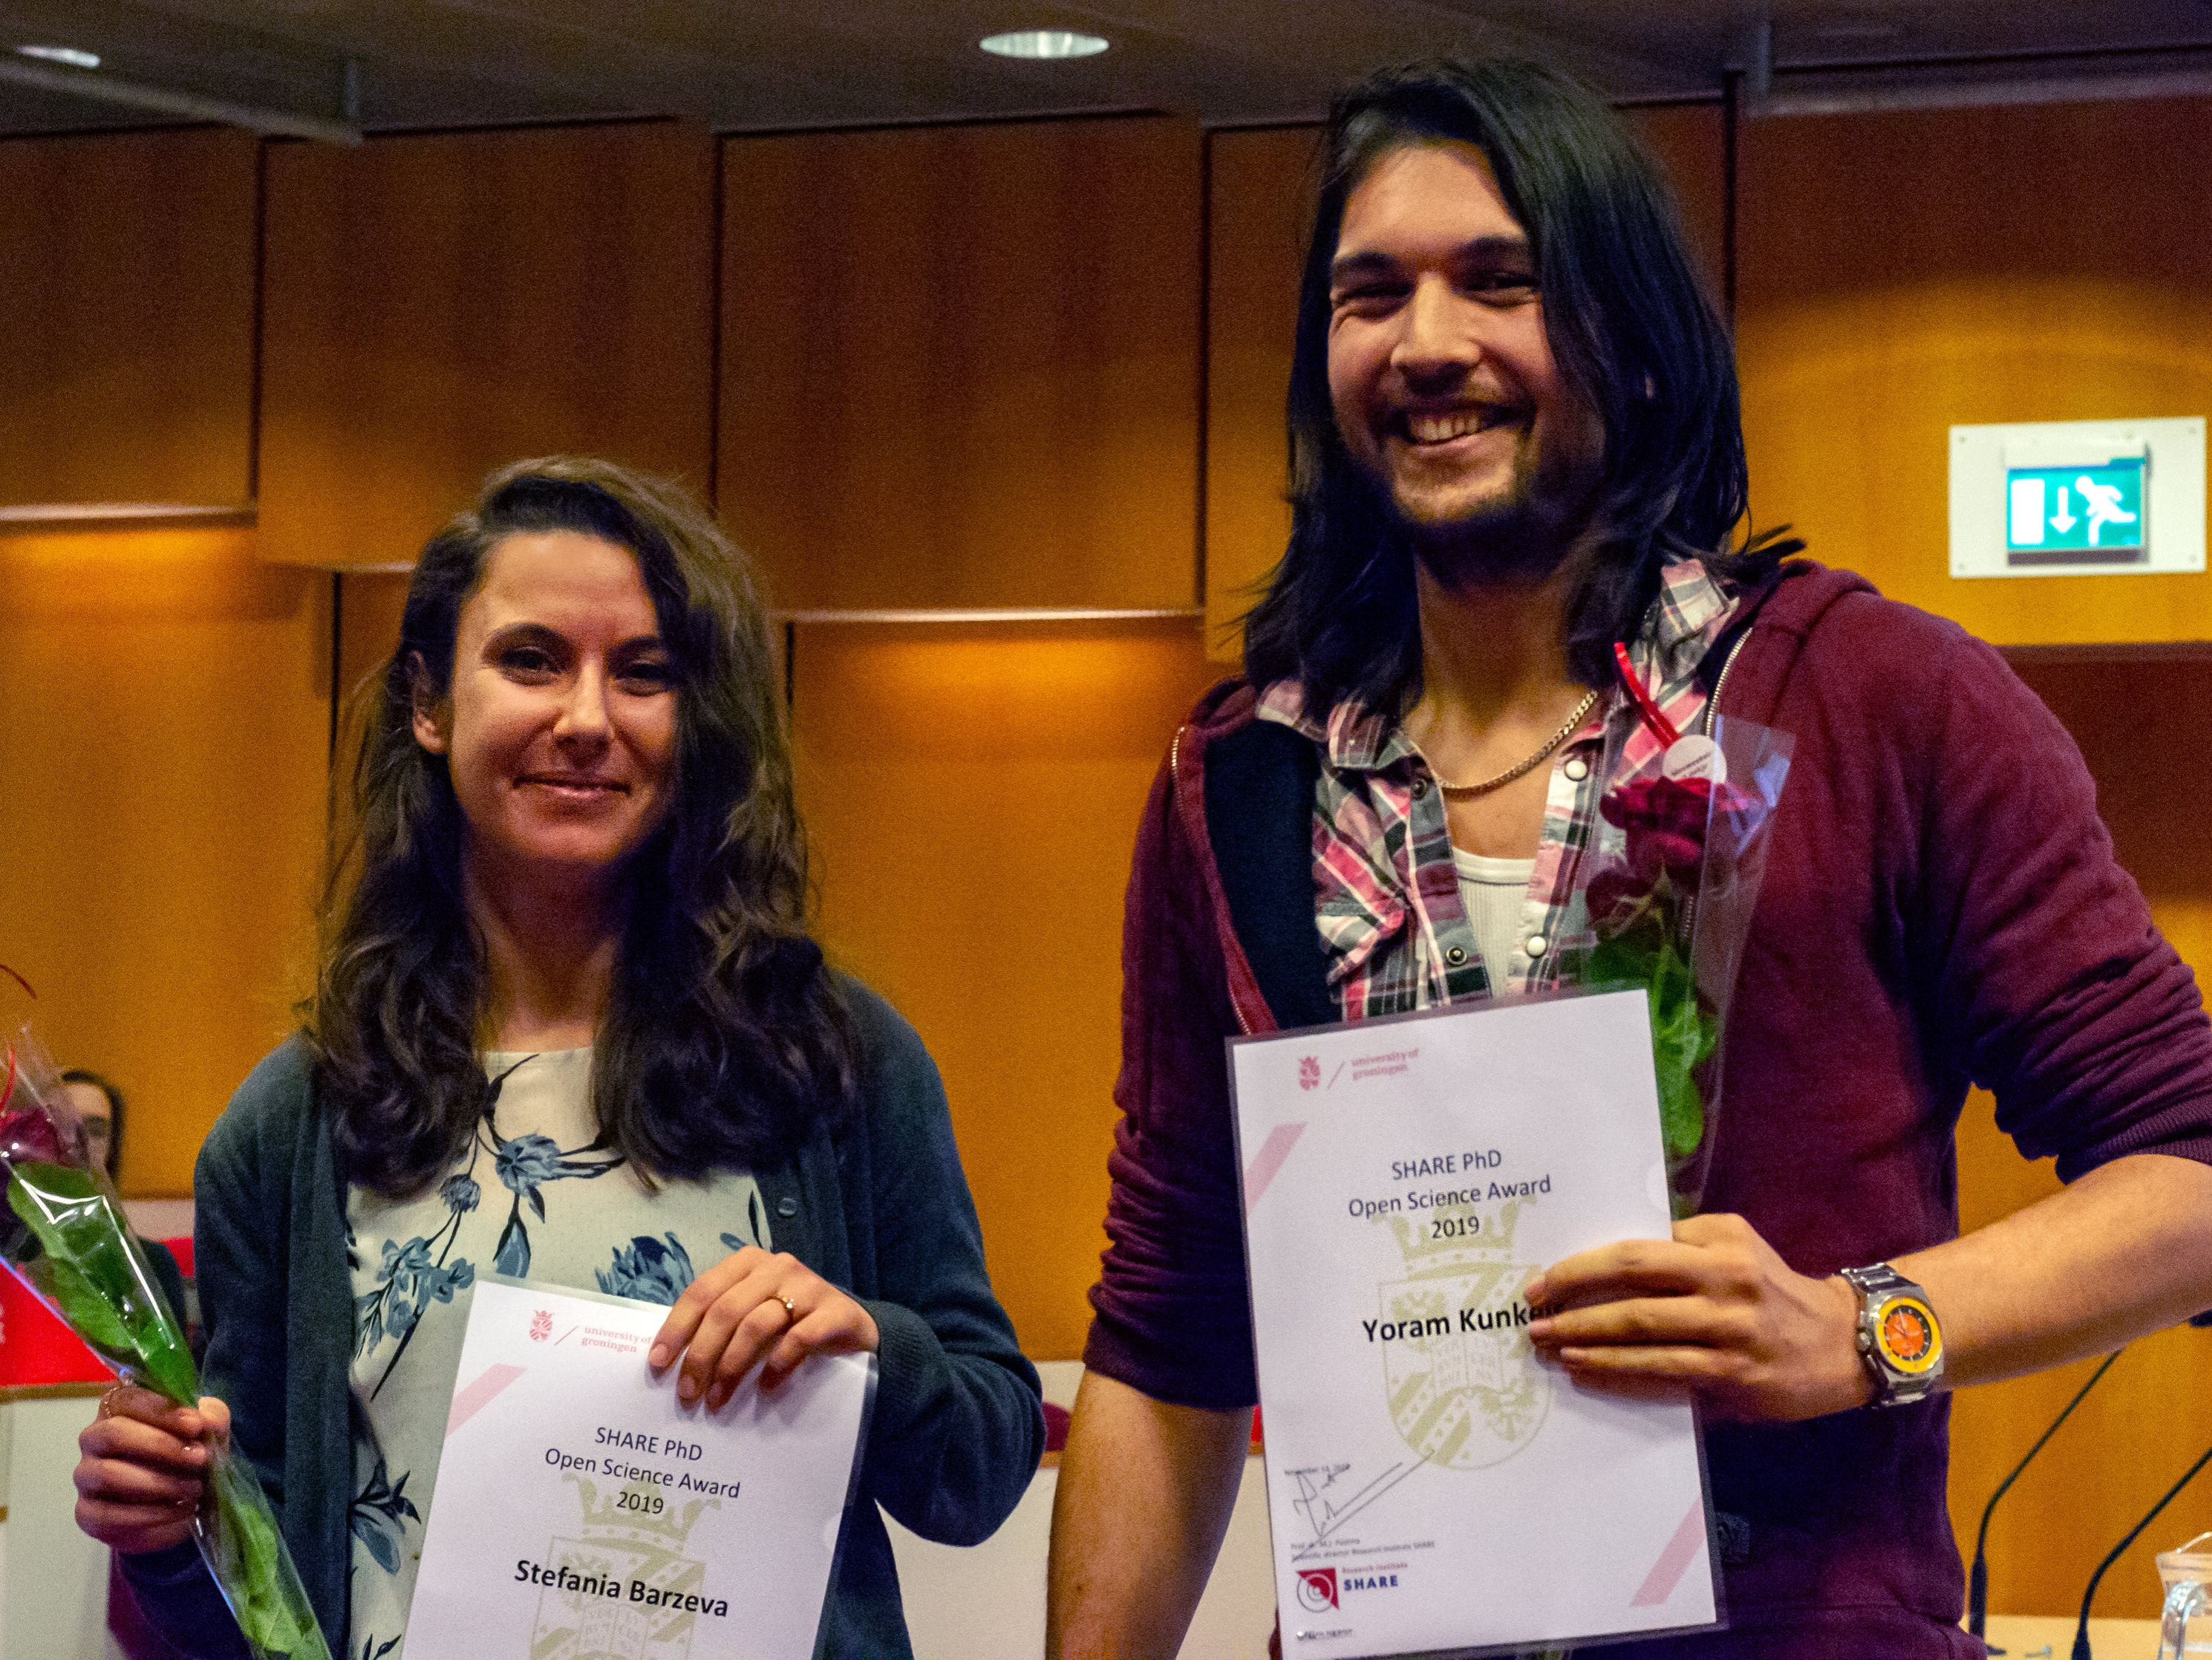 Stefania Barzeva and Yoram Kunkels receive the first SHARE Open Science Award